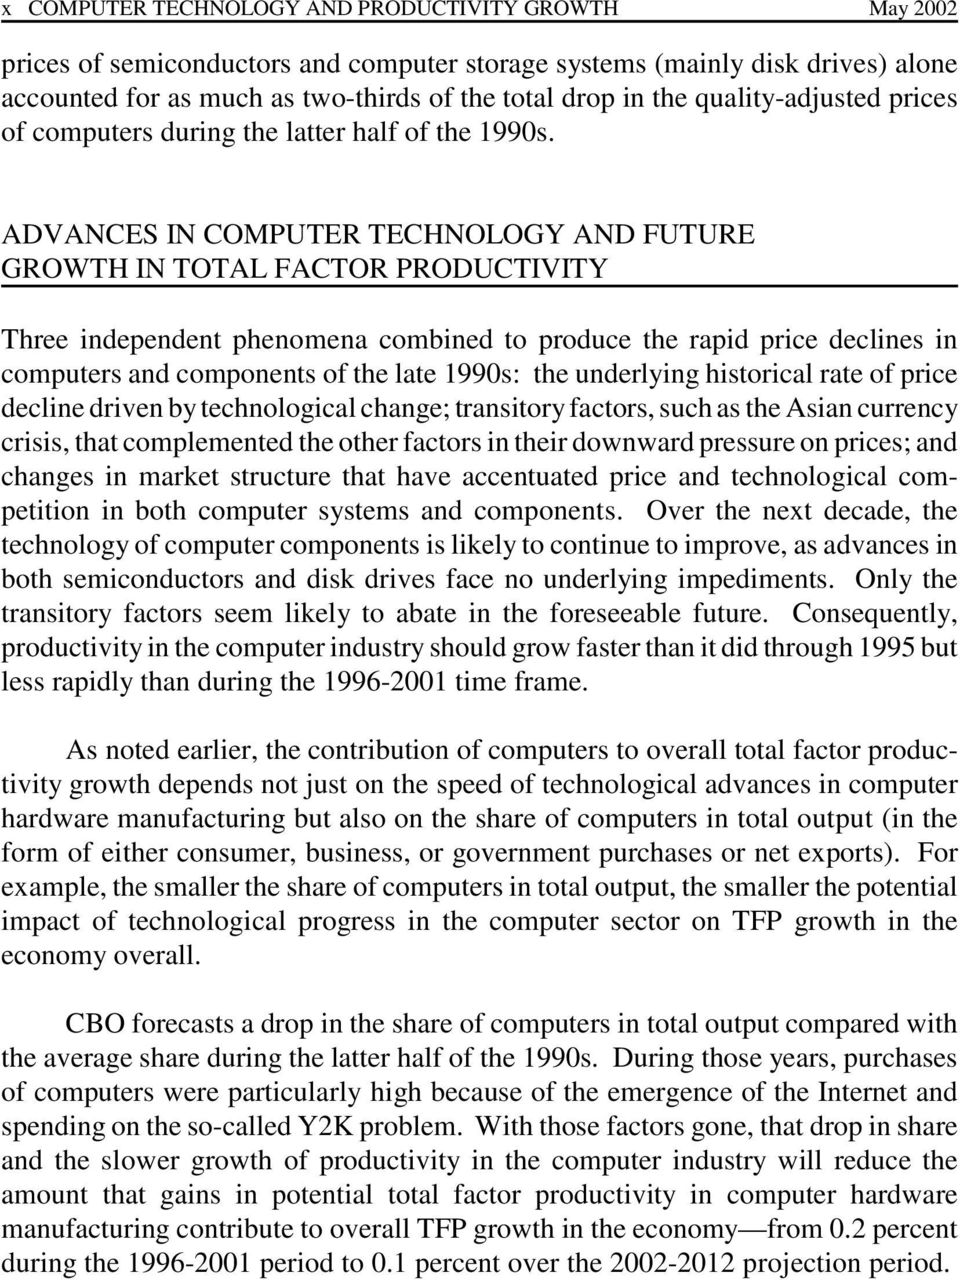 ADVANCES IN COMPUTER TECHNOLOGY AND FUTURE GROWTH IN TOTAL FACTOR PRODUCTIVITY Three independent phenomena combined to produce the rapid price declines in computers and components of the late 1990s: